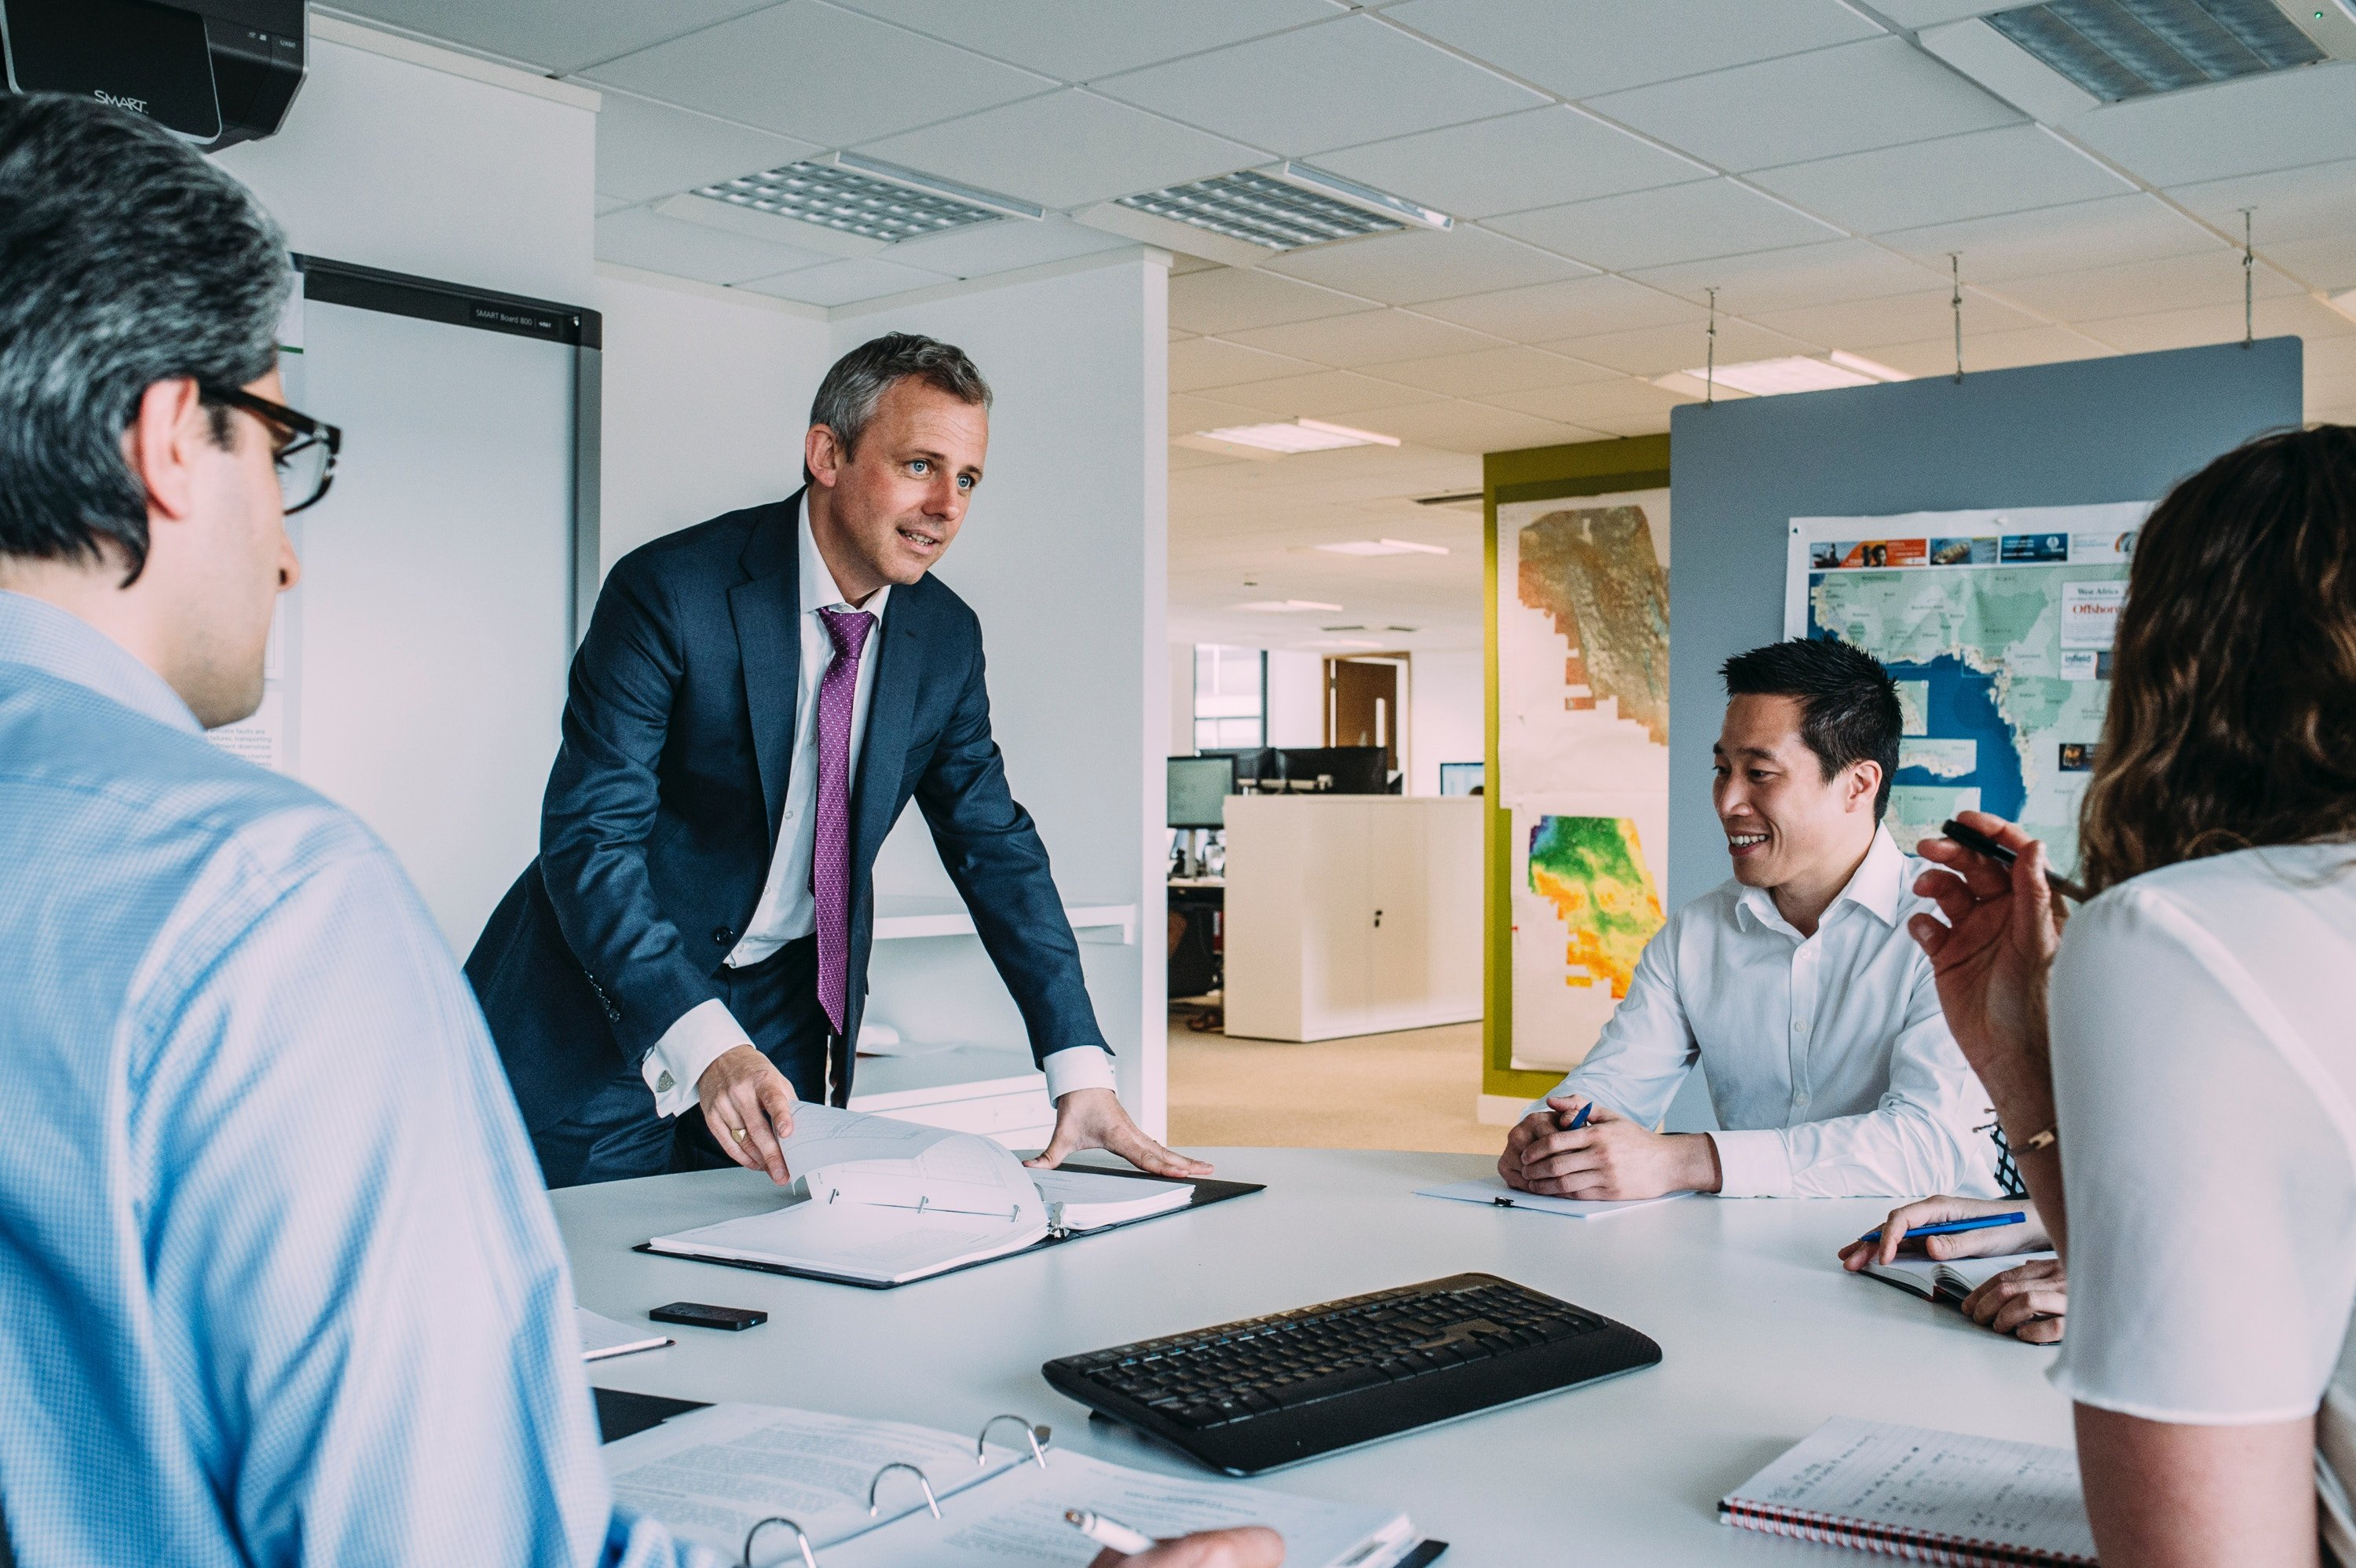 Indispensable Employee Attributes for Successful Innovation in Your Business